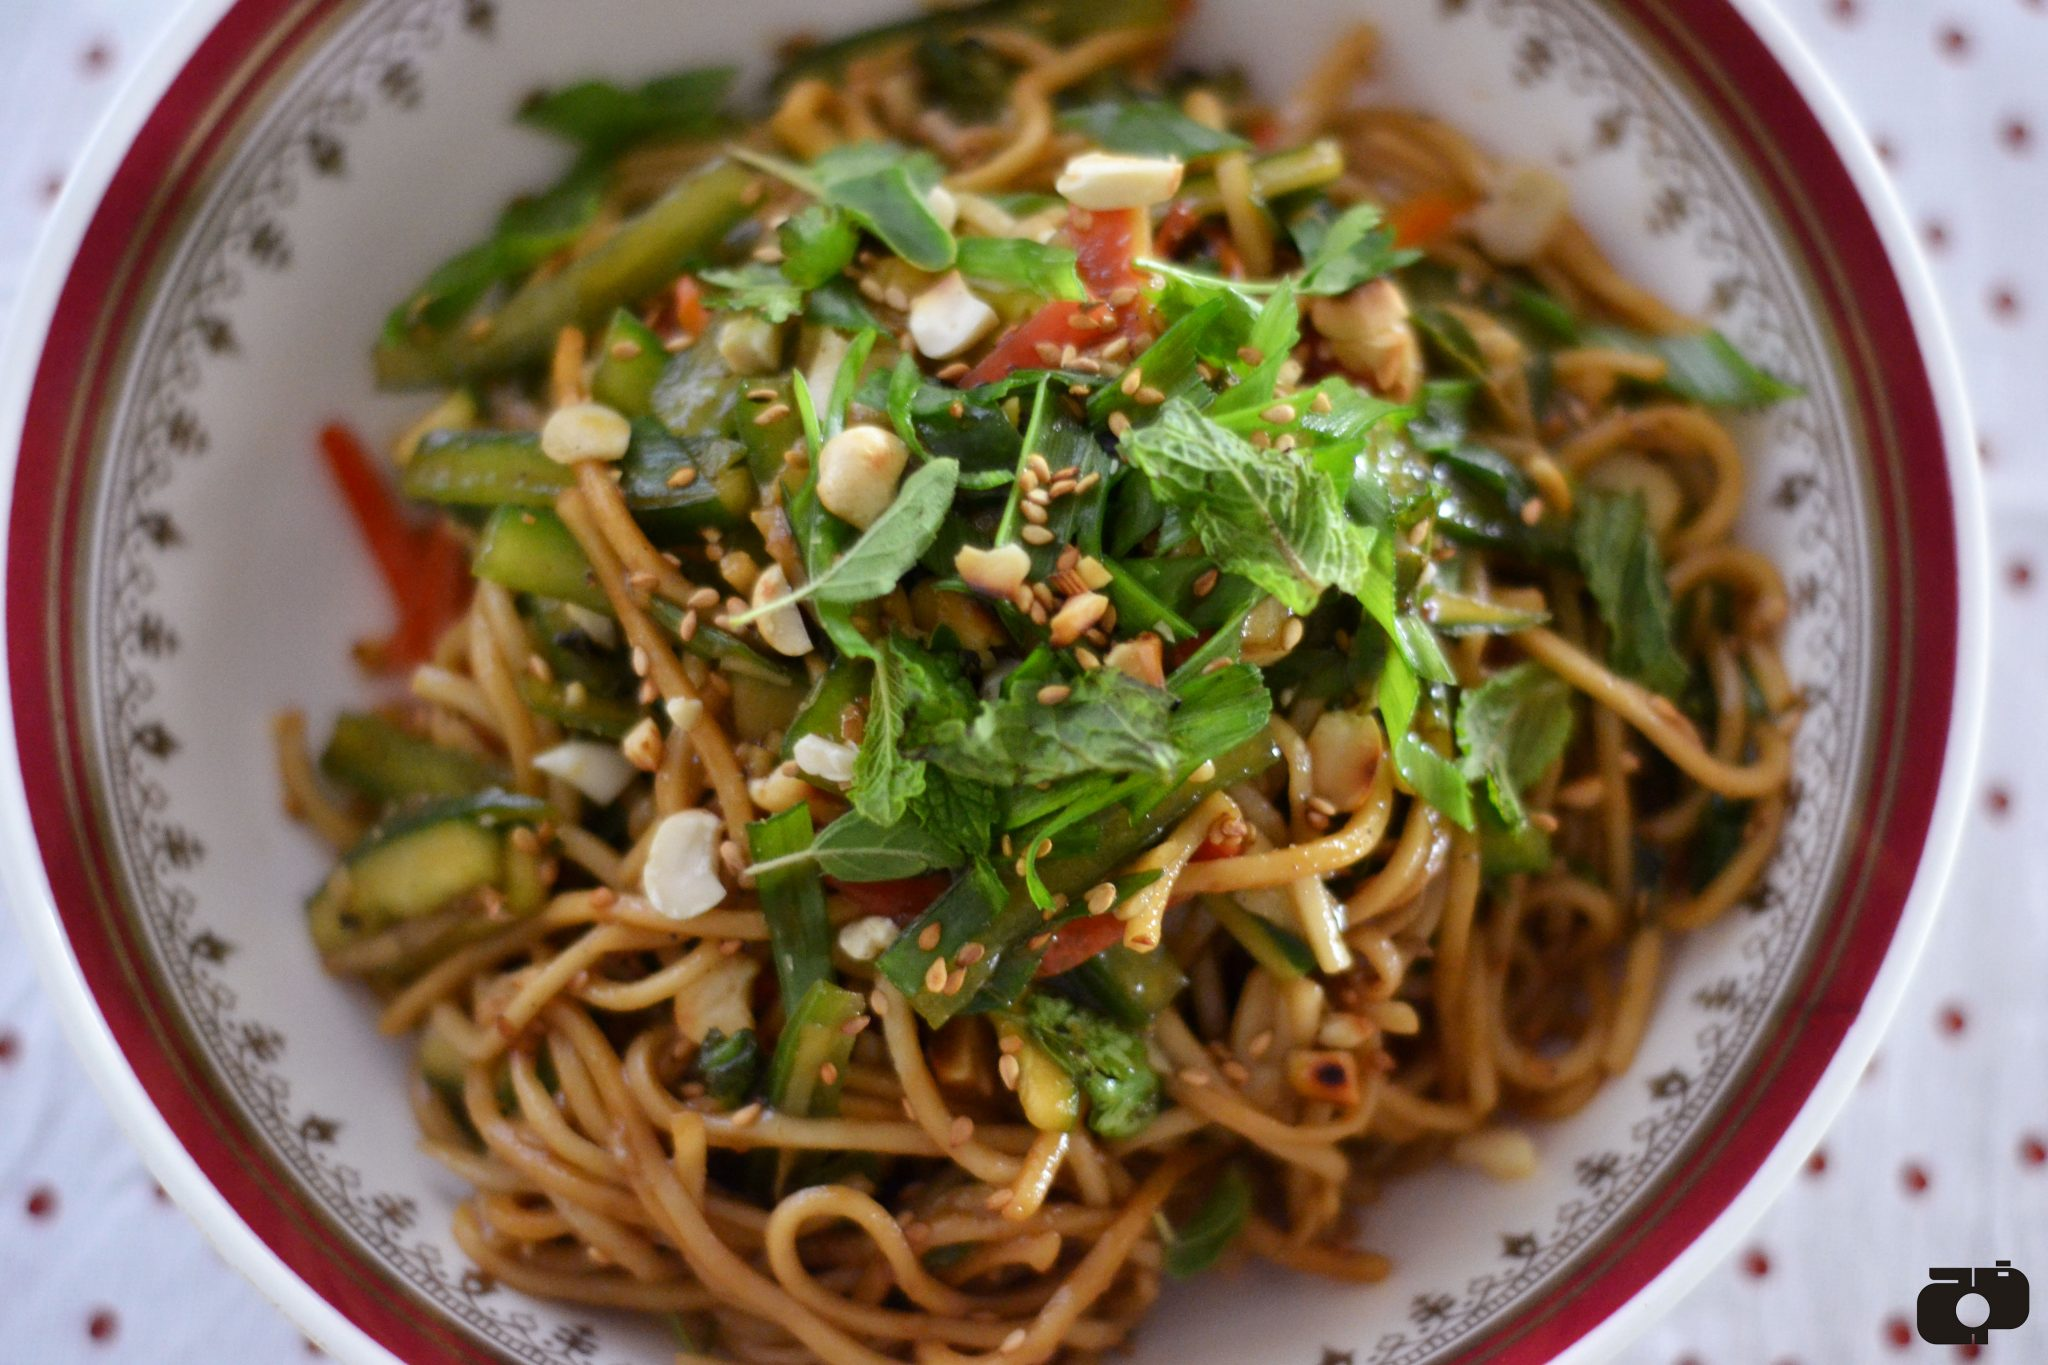 Asian style peanut noodle salad recipe